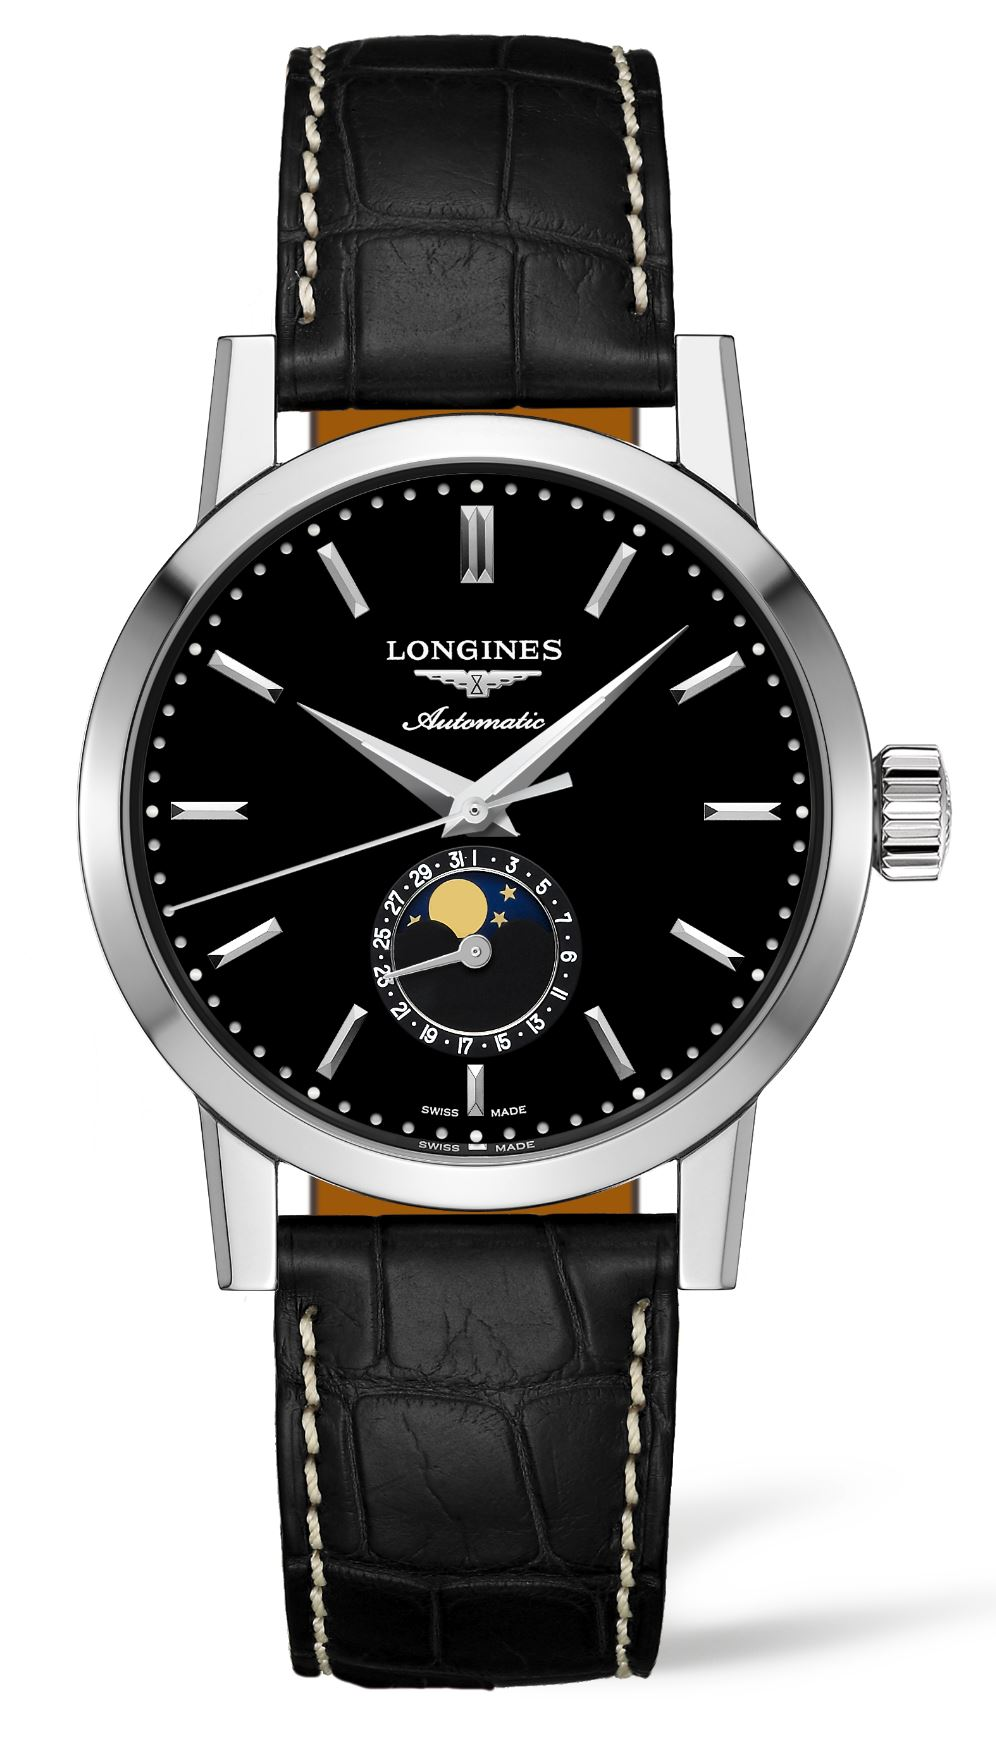 The Longines 1832-pack